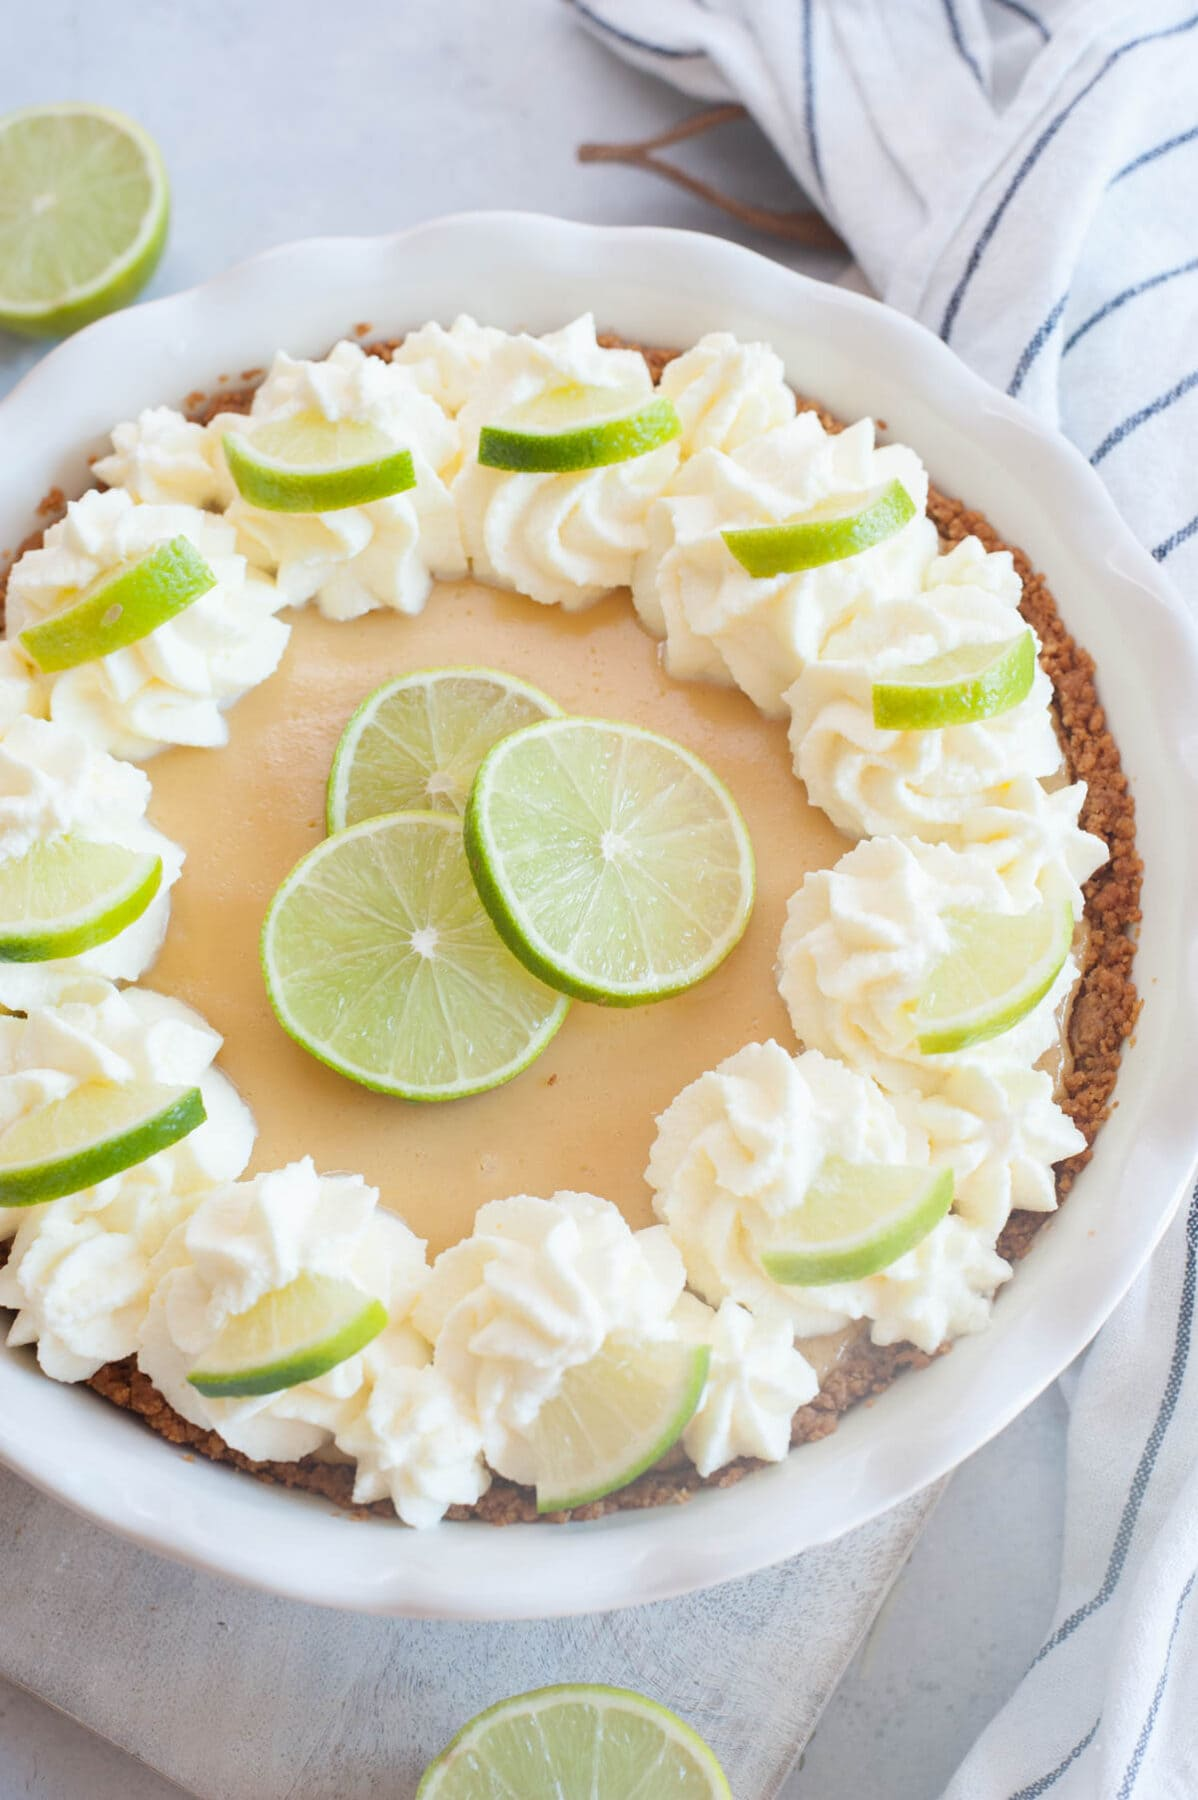 Key lime pie in a pie dish topped with whipped cream and lime slices.